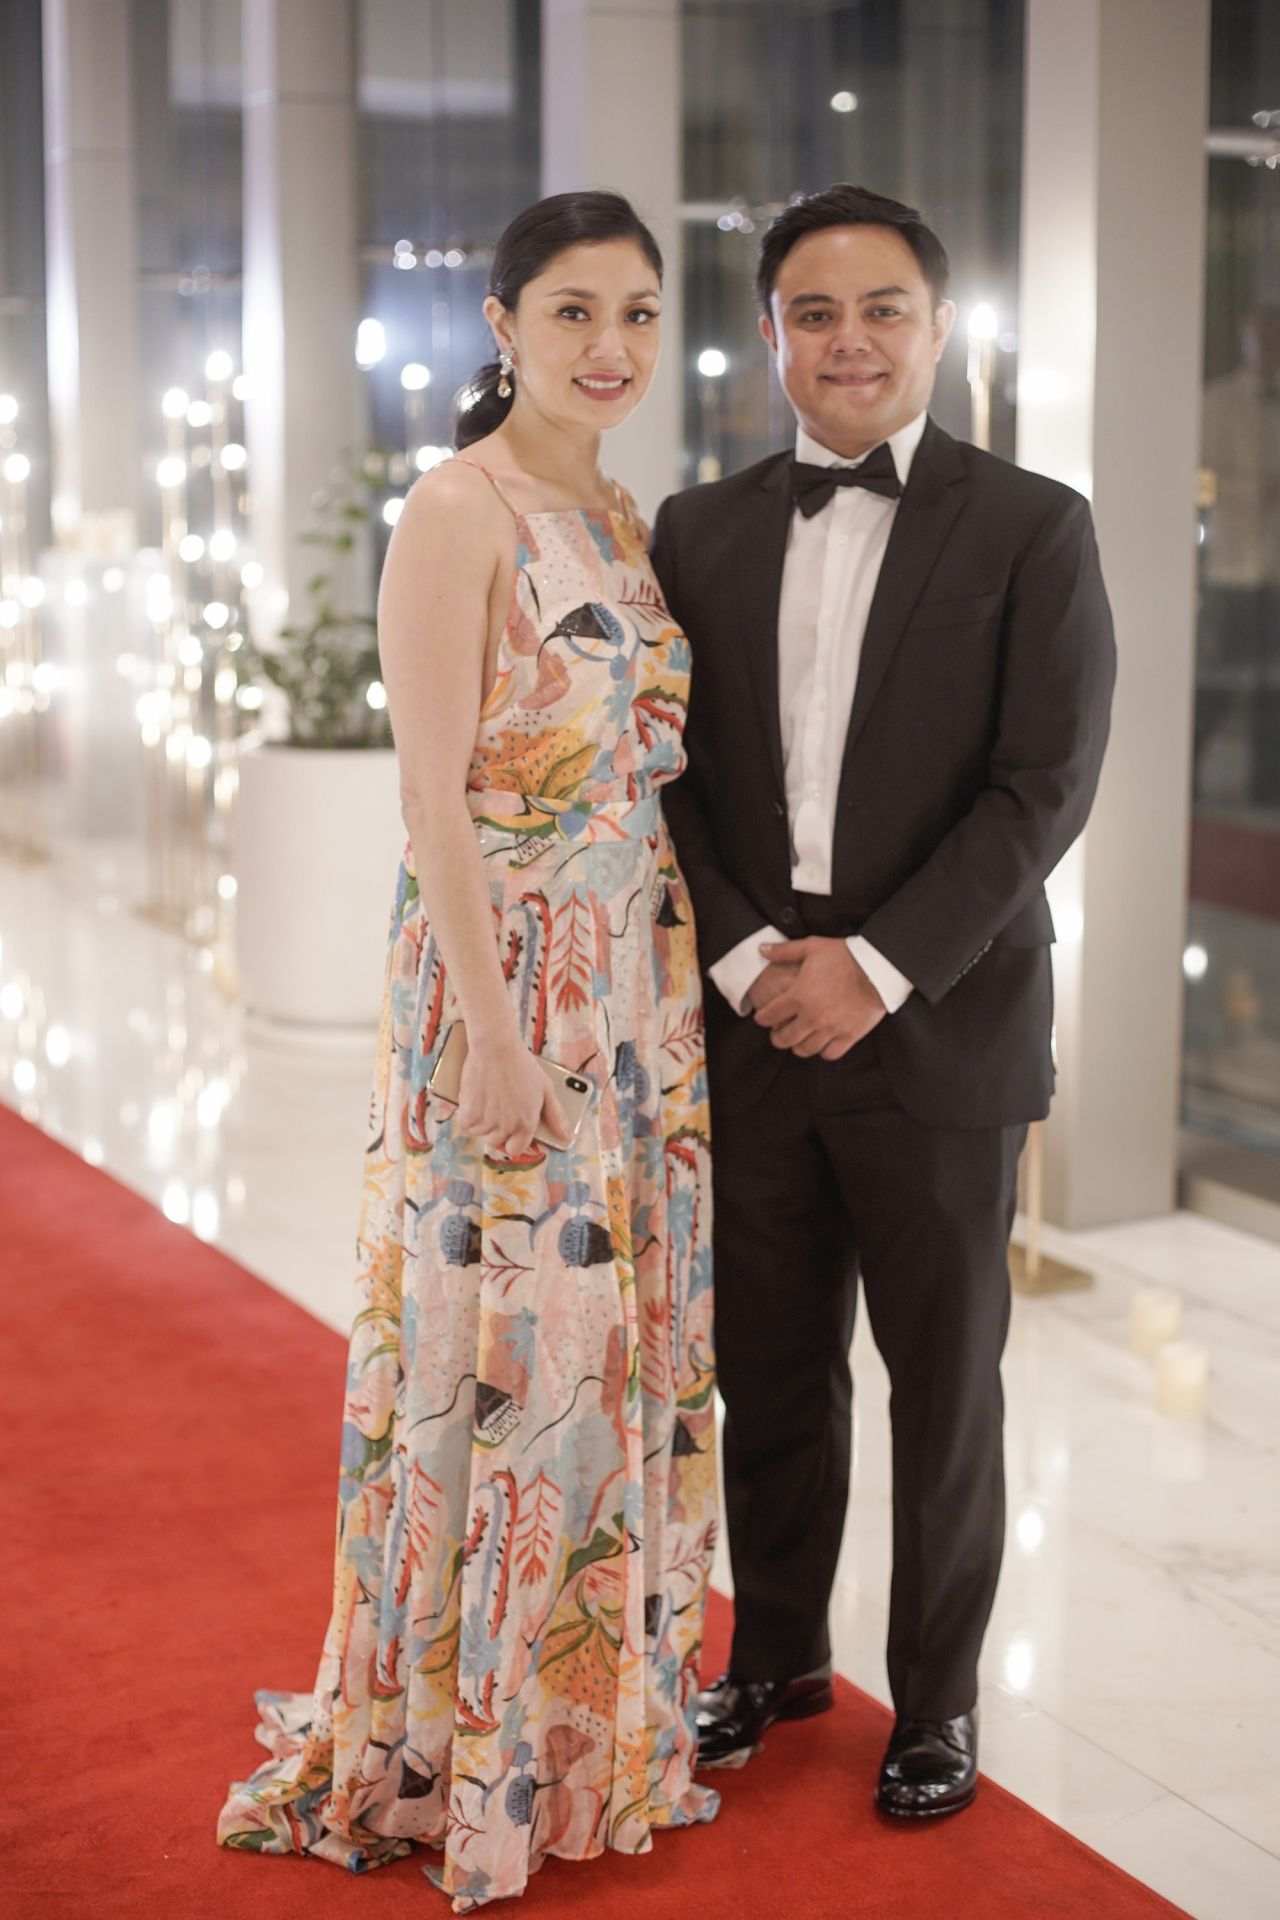 Dina and Paolo Tantoco